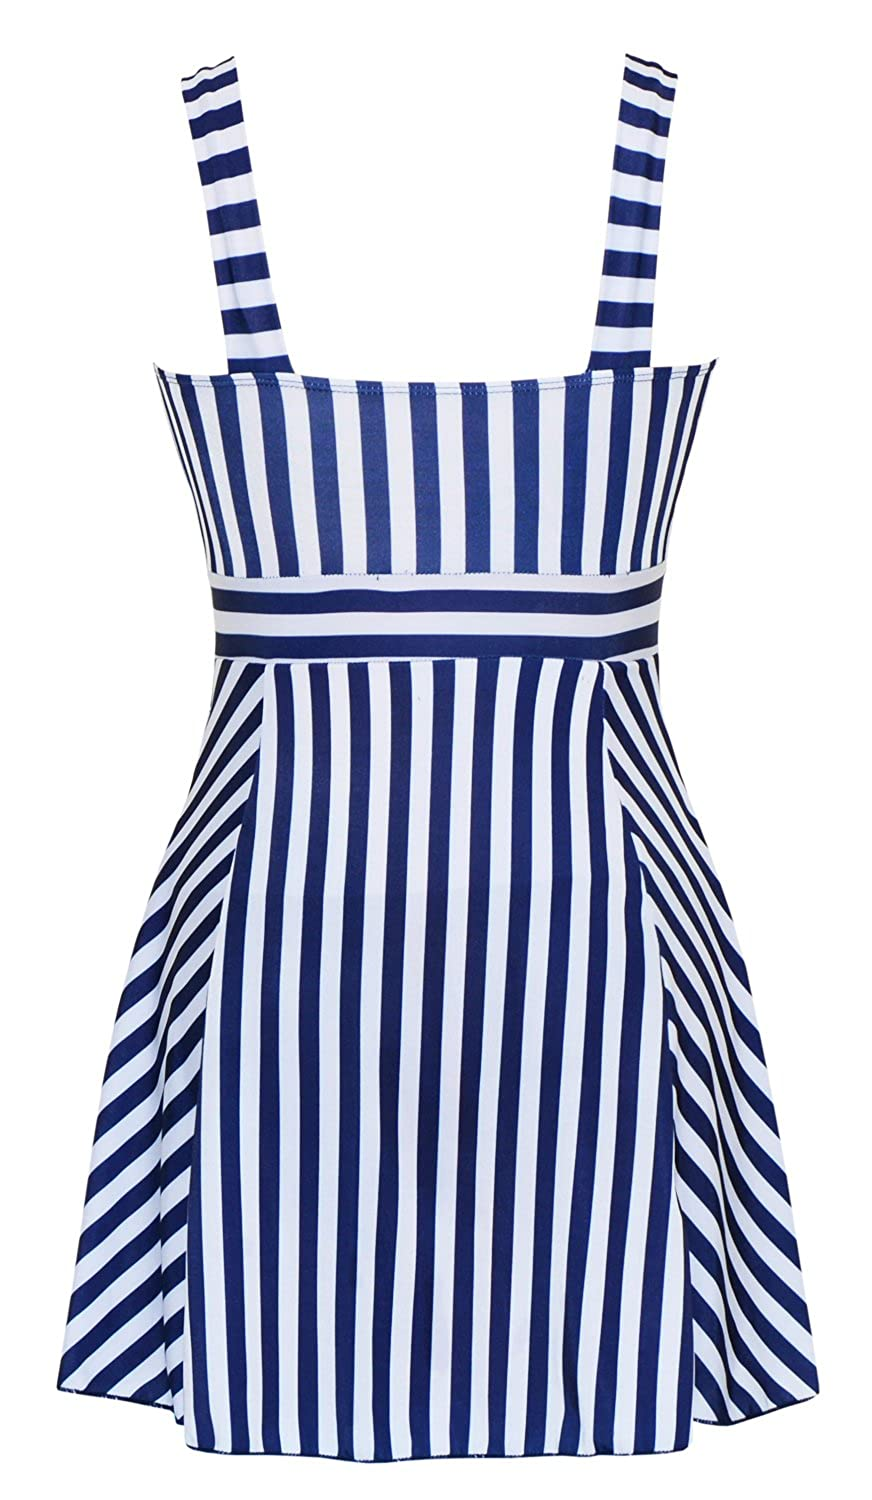 81eb9b584ae21 Women's One Piece Sailor Vintage Swimsuit Tankini Plus Size Cover Up  Swimdress at Amazon Women's Clothing store: